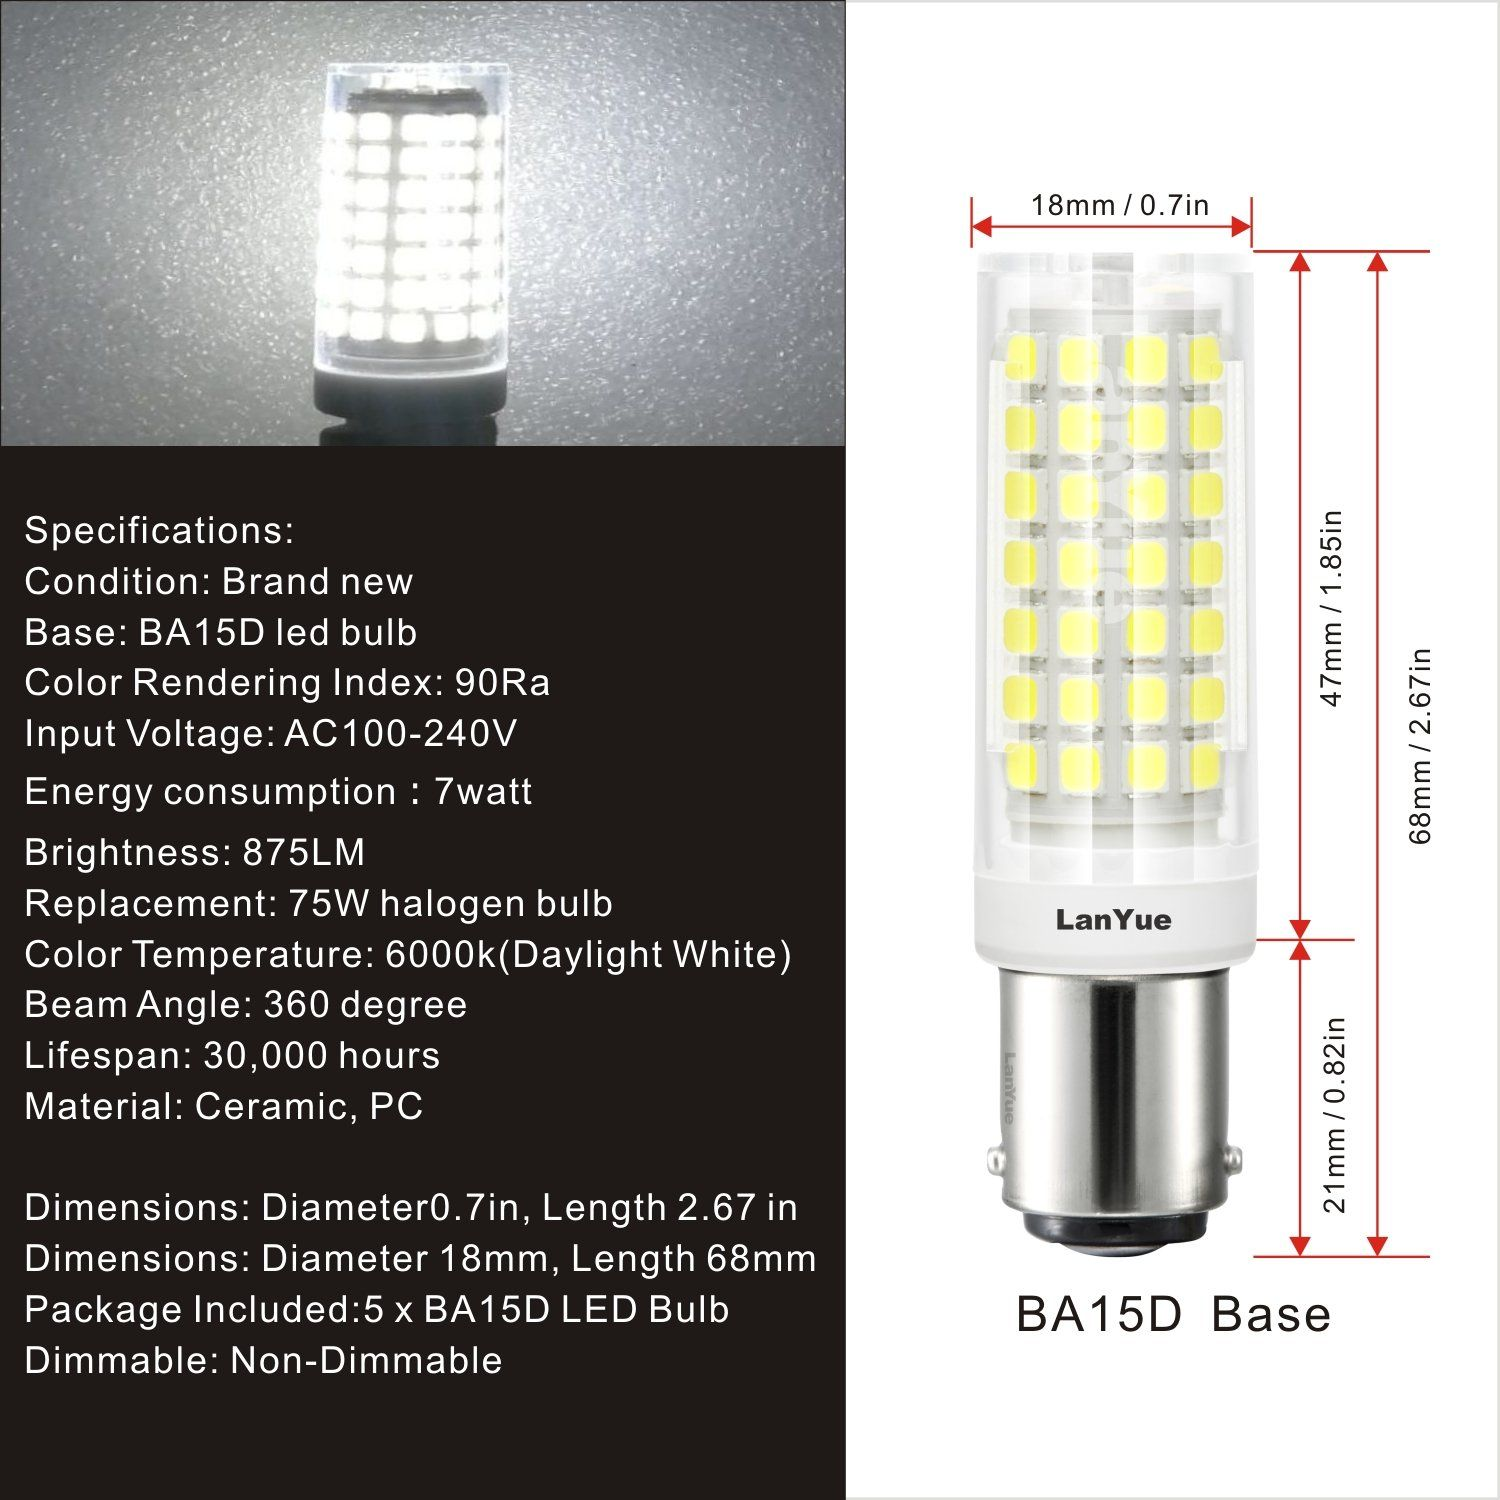 Ba15d Led Light Bulb 120v 6w 60w Equivalent Daylight White Ba15d Double Contact Bayonet Base 60w 75w Halogen Bulb Replacement For Sewi In 2020 Light Bulb Led Bulb Bulb